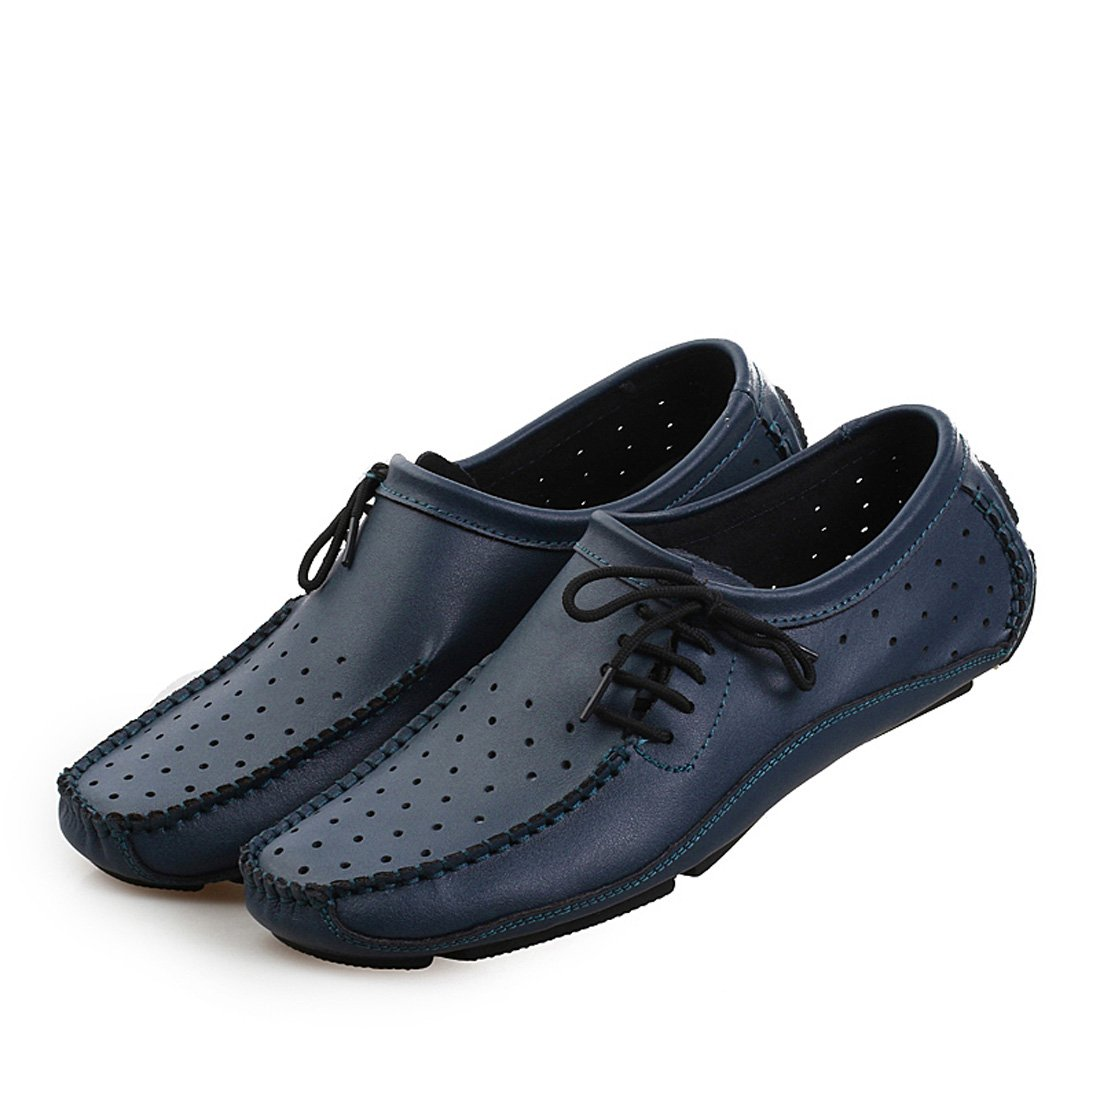 Ceyue Mens Slip on Loafers Casual Flat Driving Shoes Hole breahthable Leather Shoes Blue Size 8.5 eu42